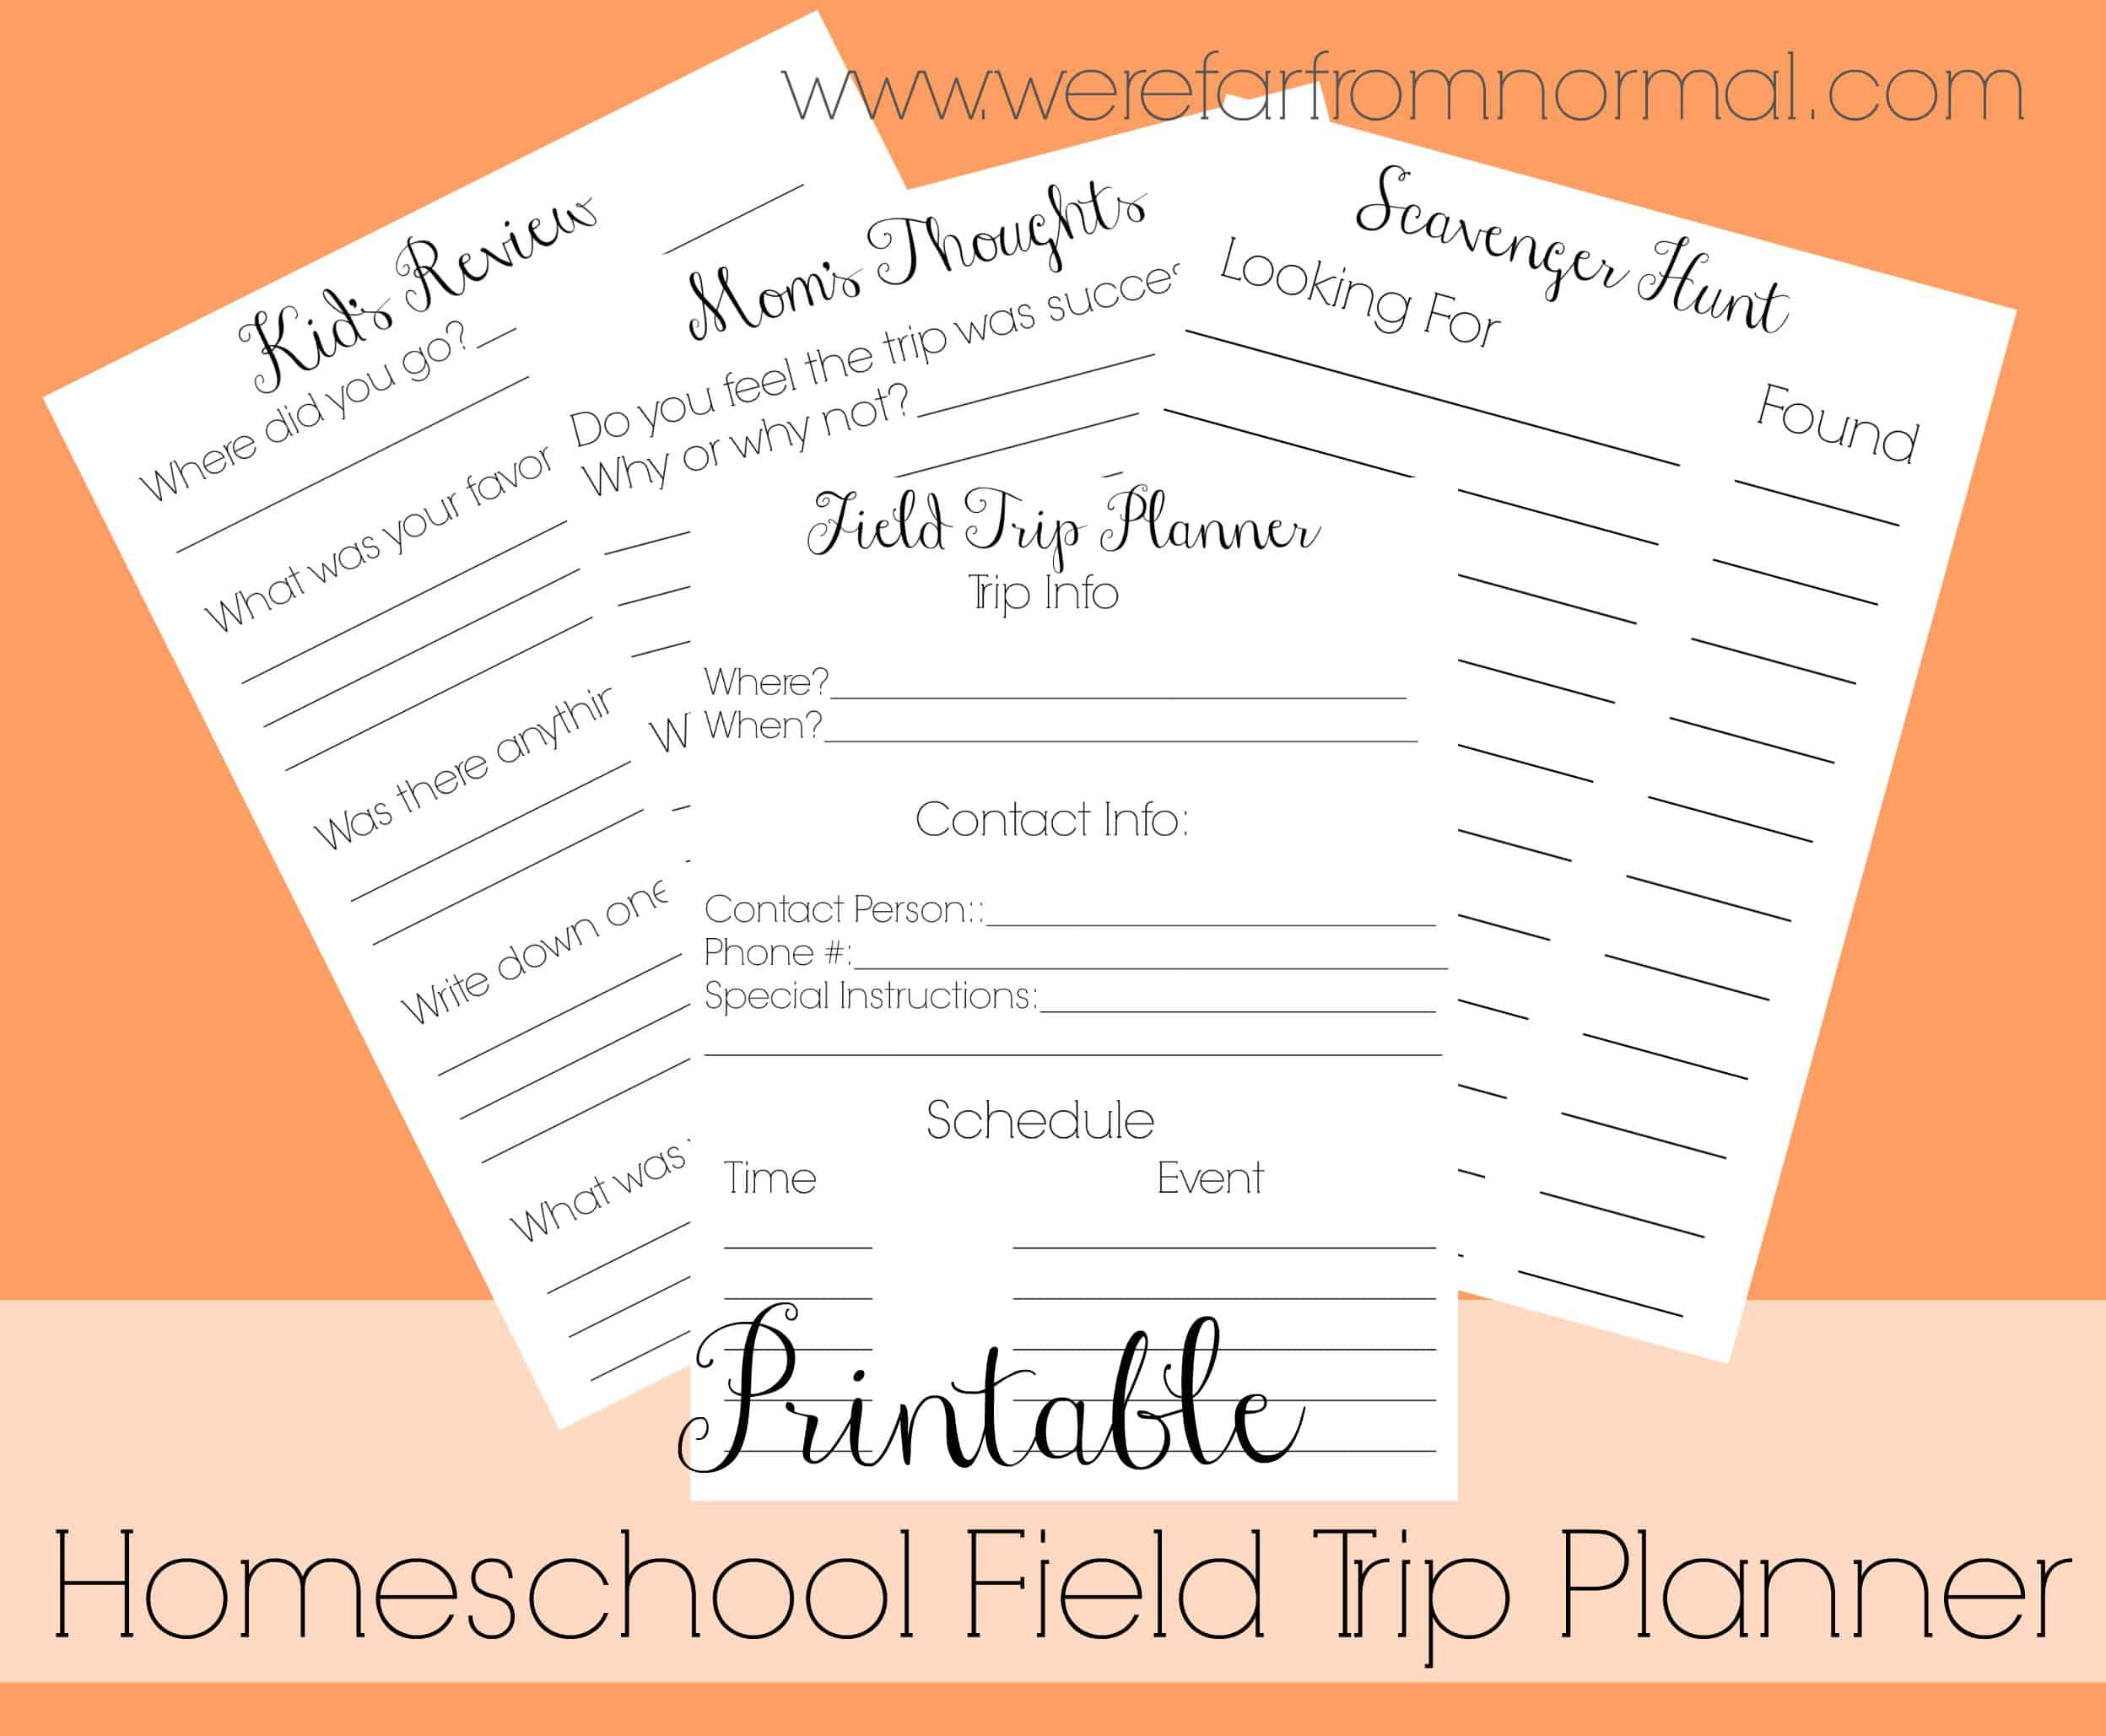 Free Printable Homeschool Field Trip Planner